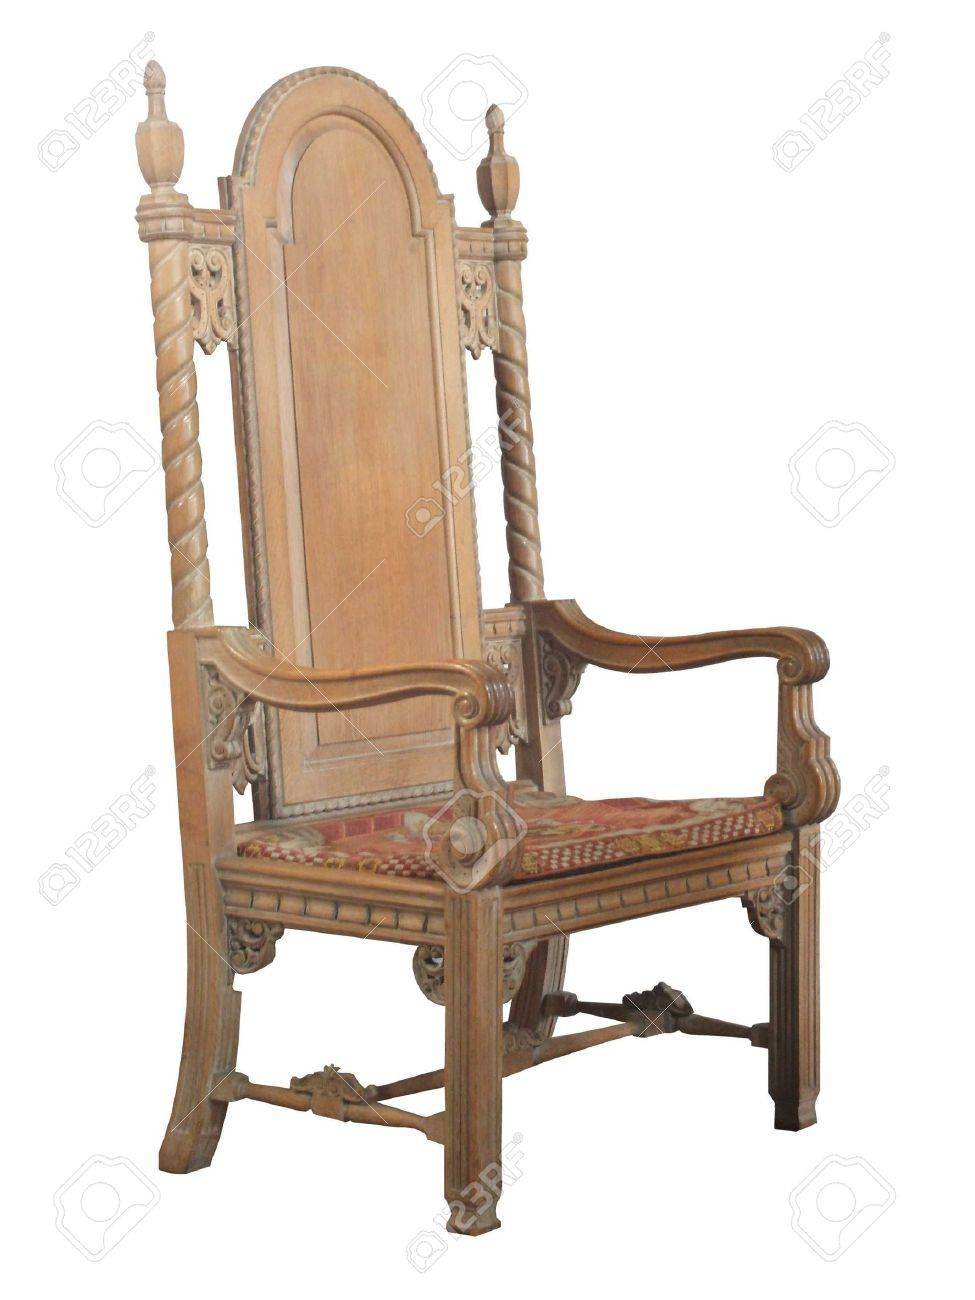 A Large Ancient Antique Wooden Church Chair. Stock Photo - 5691604 - A Large Ancient Antique Wooden Church Chair. Stock Photo, Picture